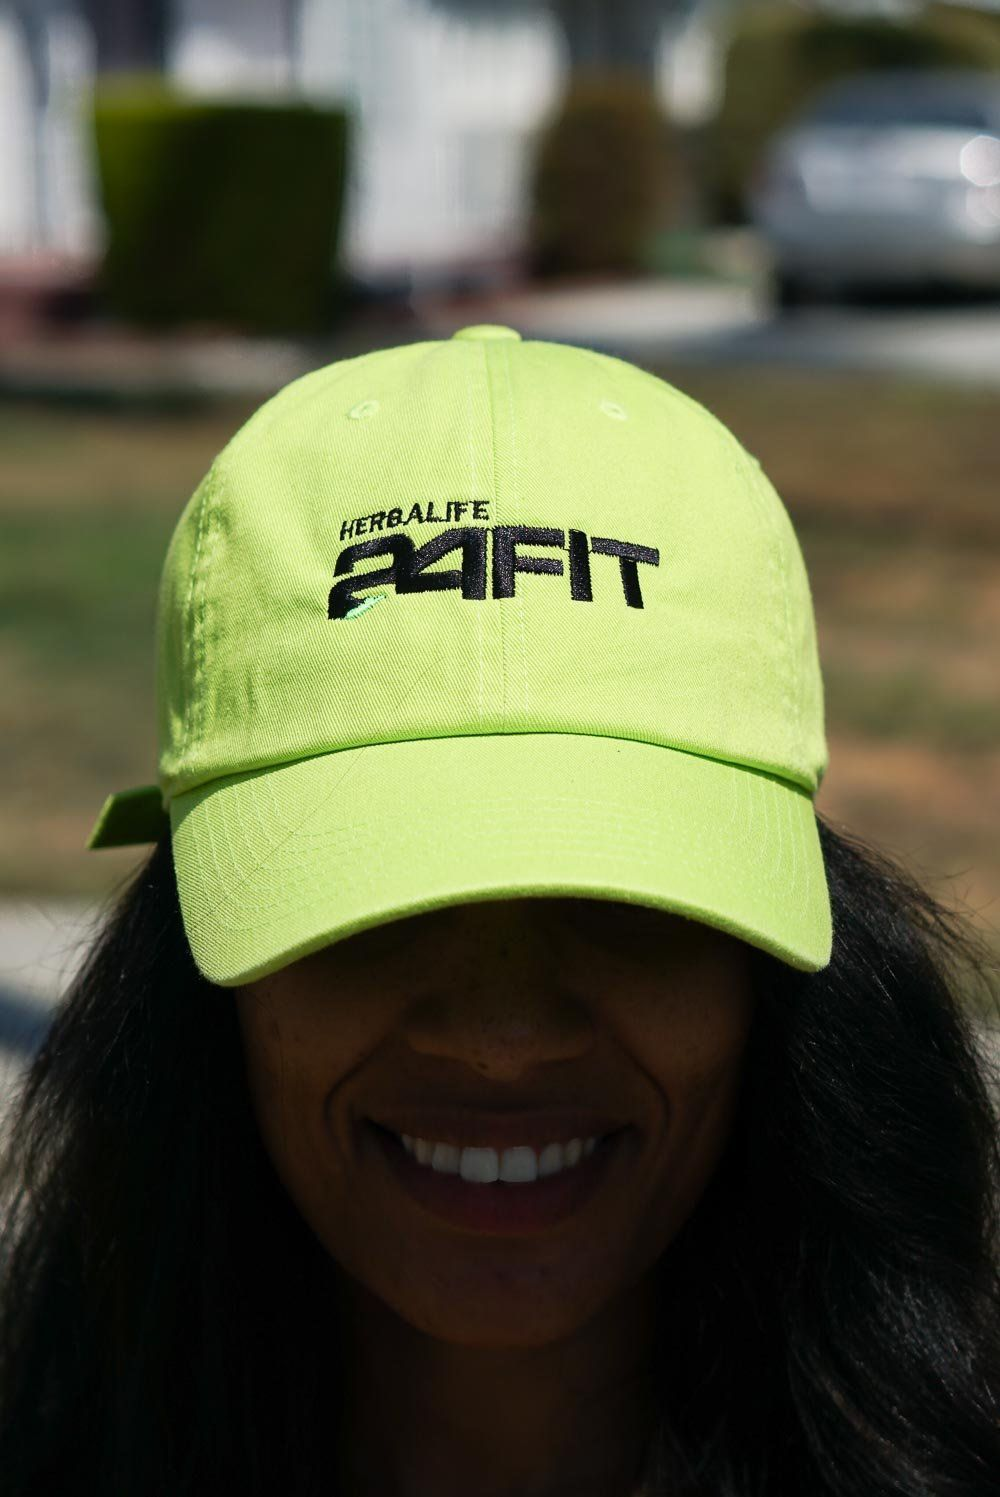 ecb0f91ce7d56f Herbalife 24 FIT polo dad hat, neon green w/black | litnesssociety ...